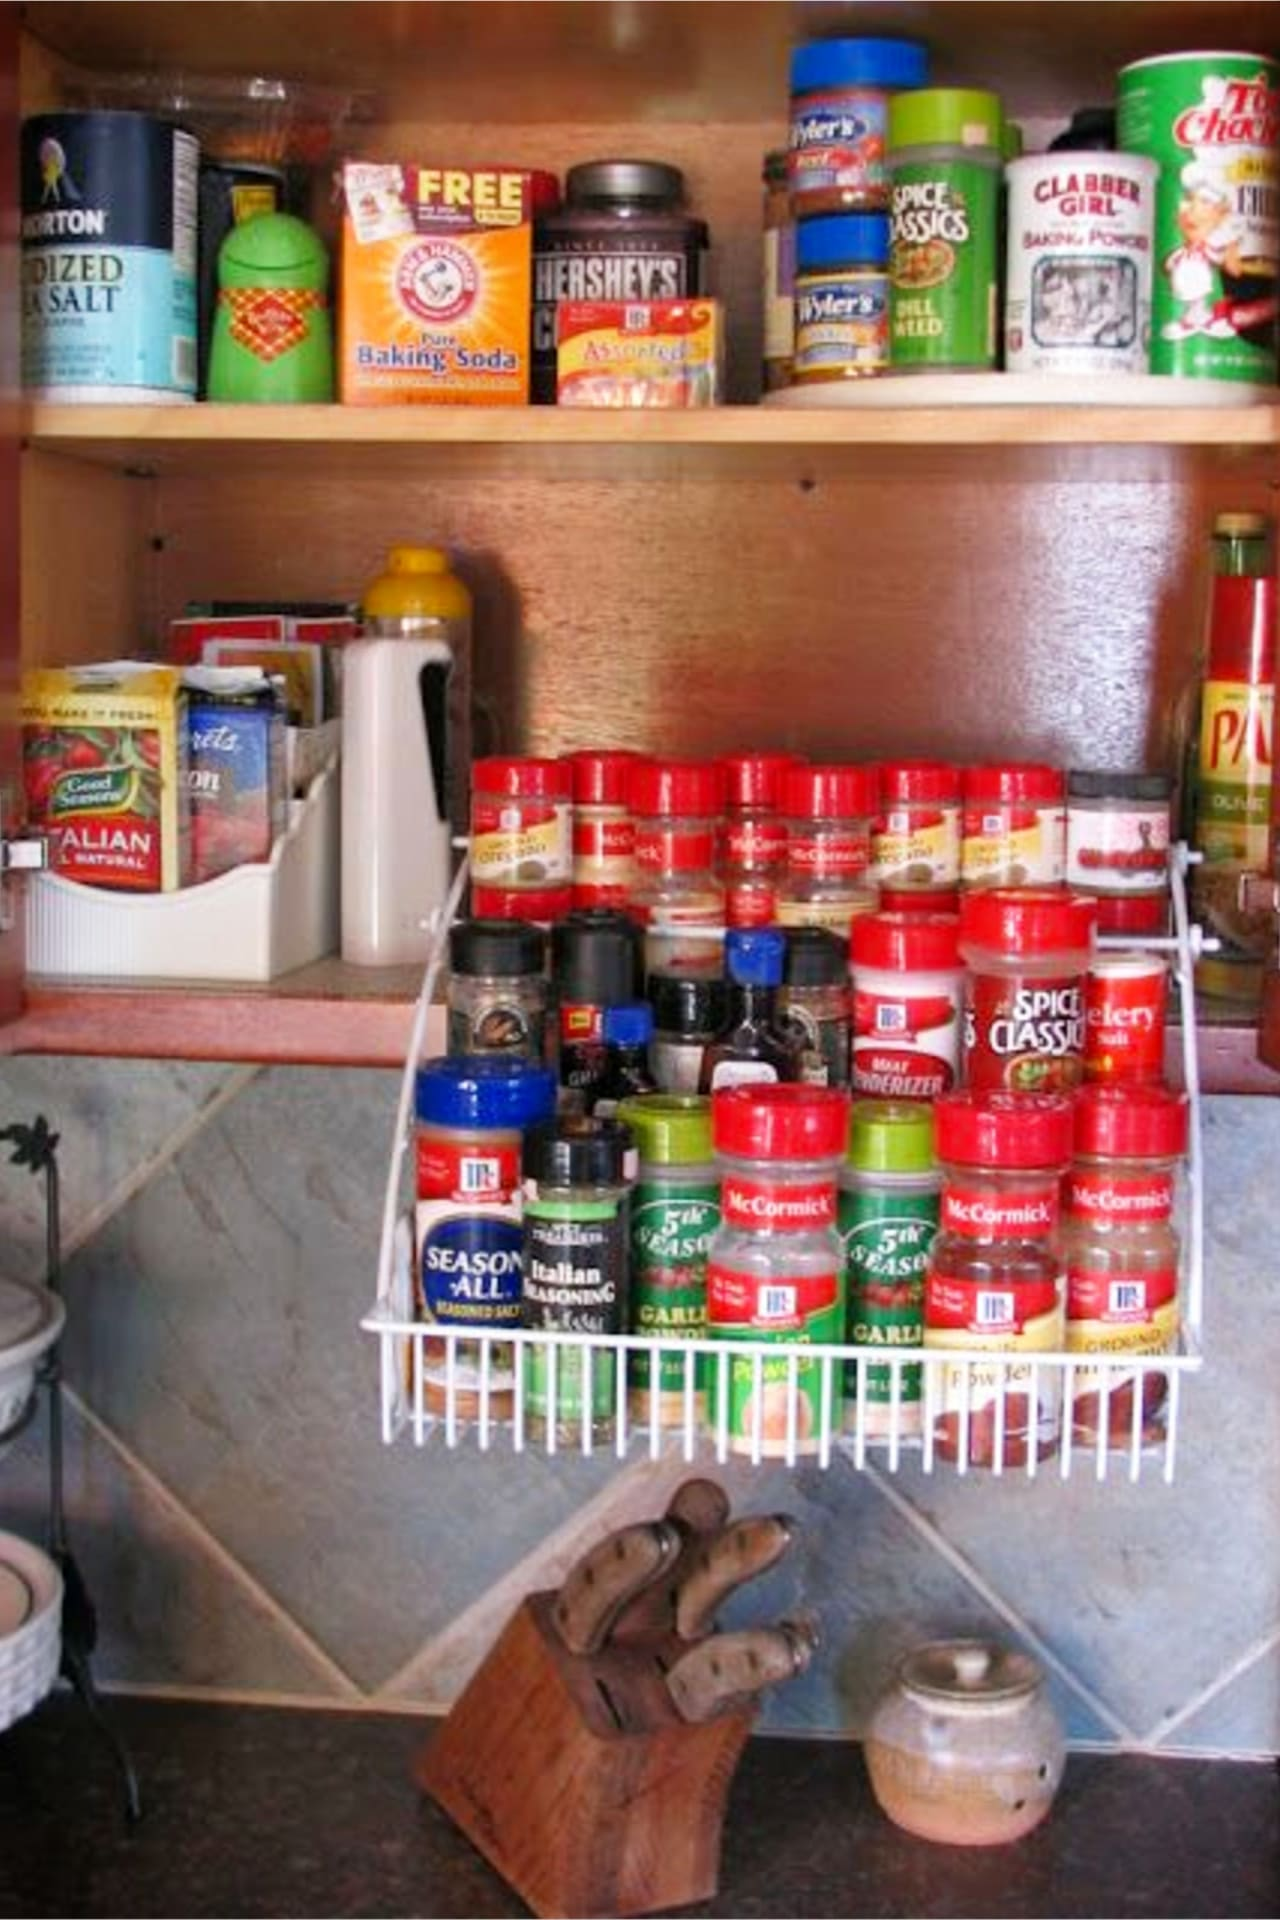 Kitchen clutter solutions - spice cabinet organization ideas to organize your kitchen on a budget